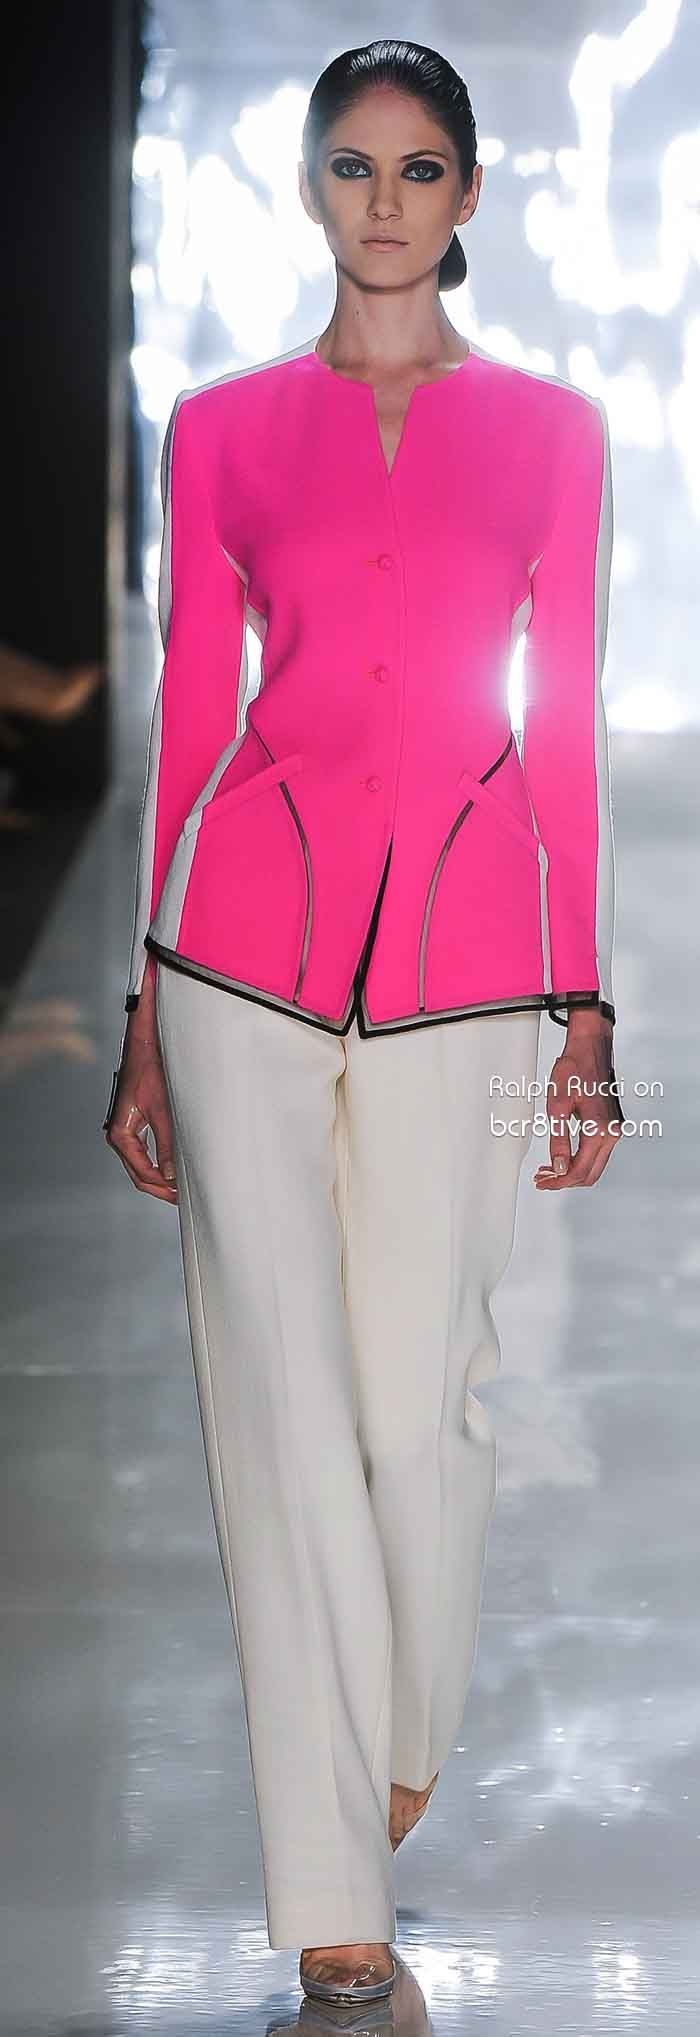 Ralph Rucci Spring 2013